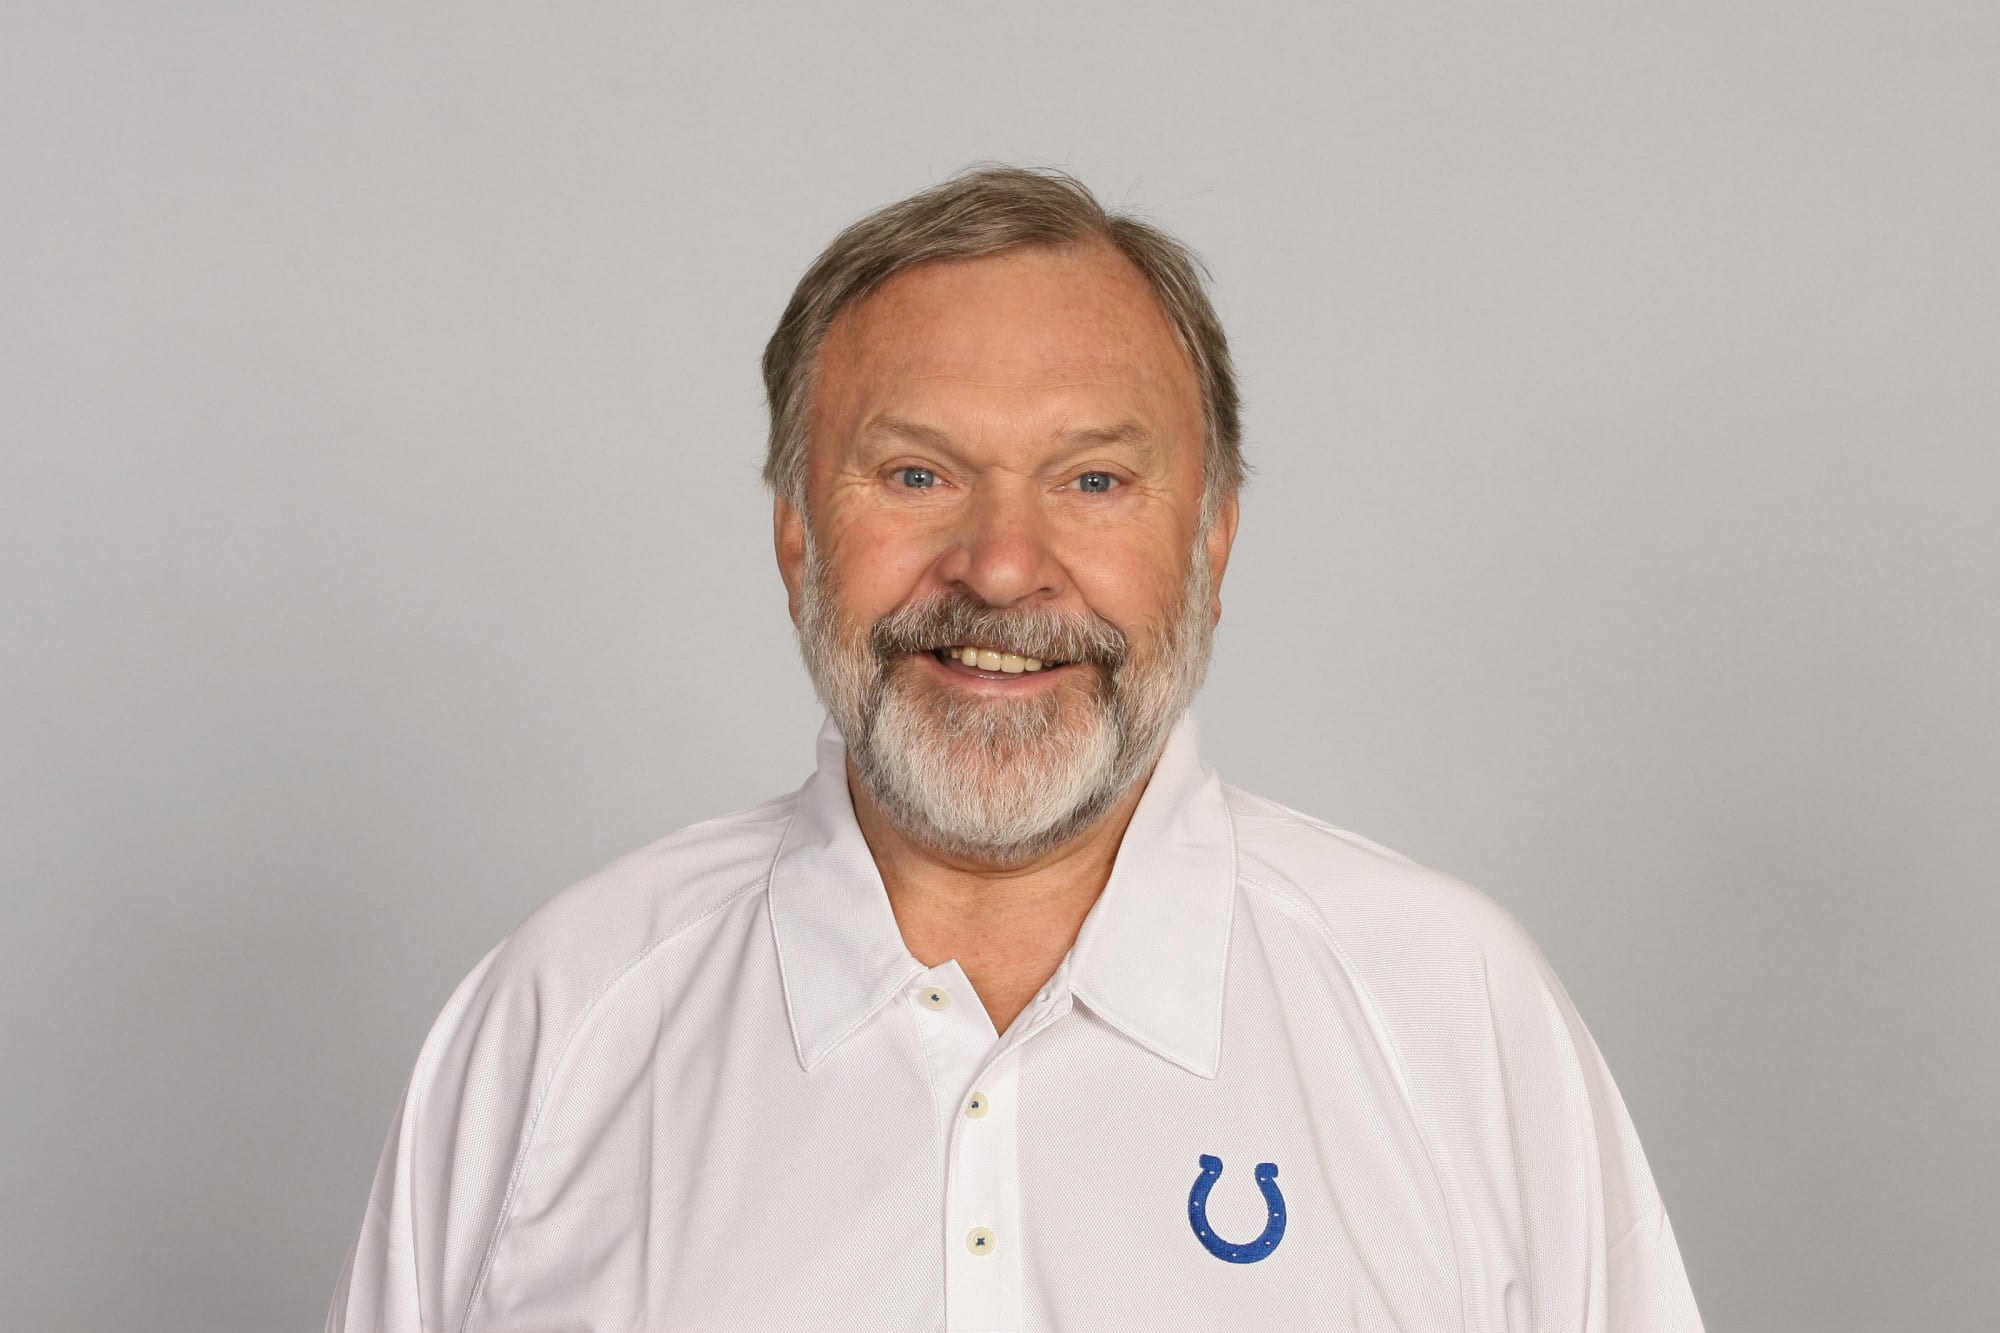 Colts: Legendary OL coach Howard Mudd dies following accident